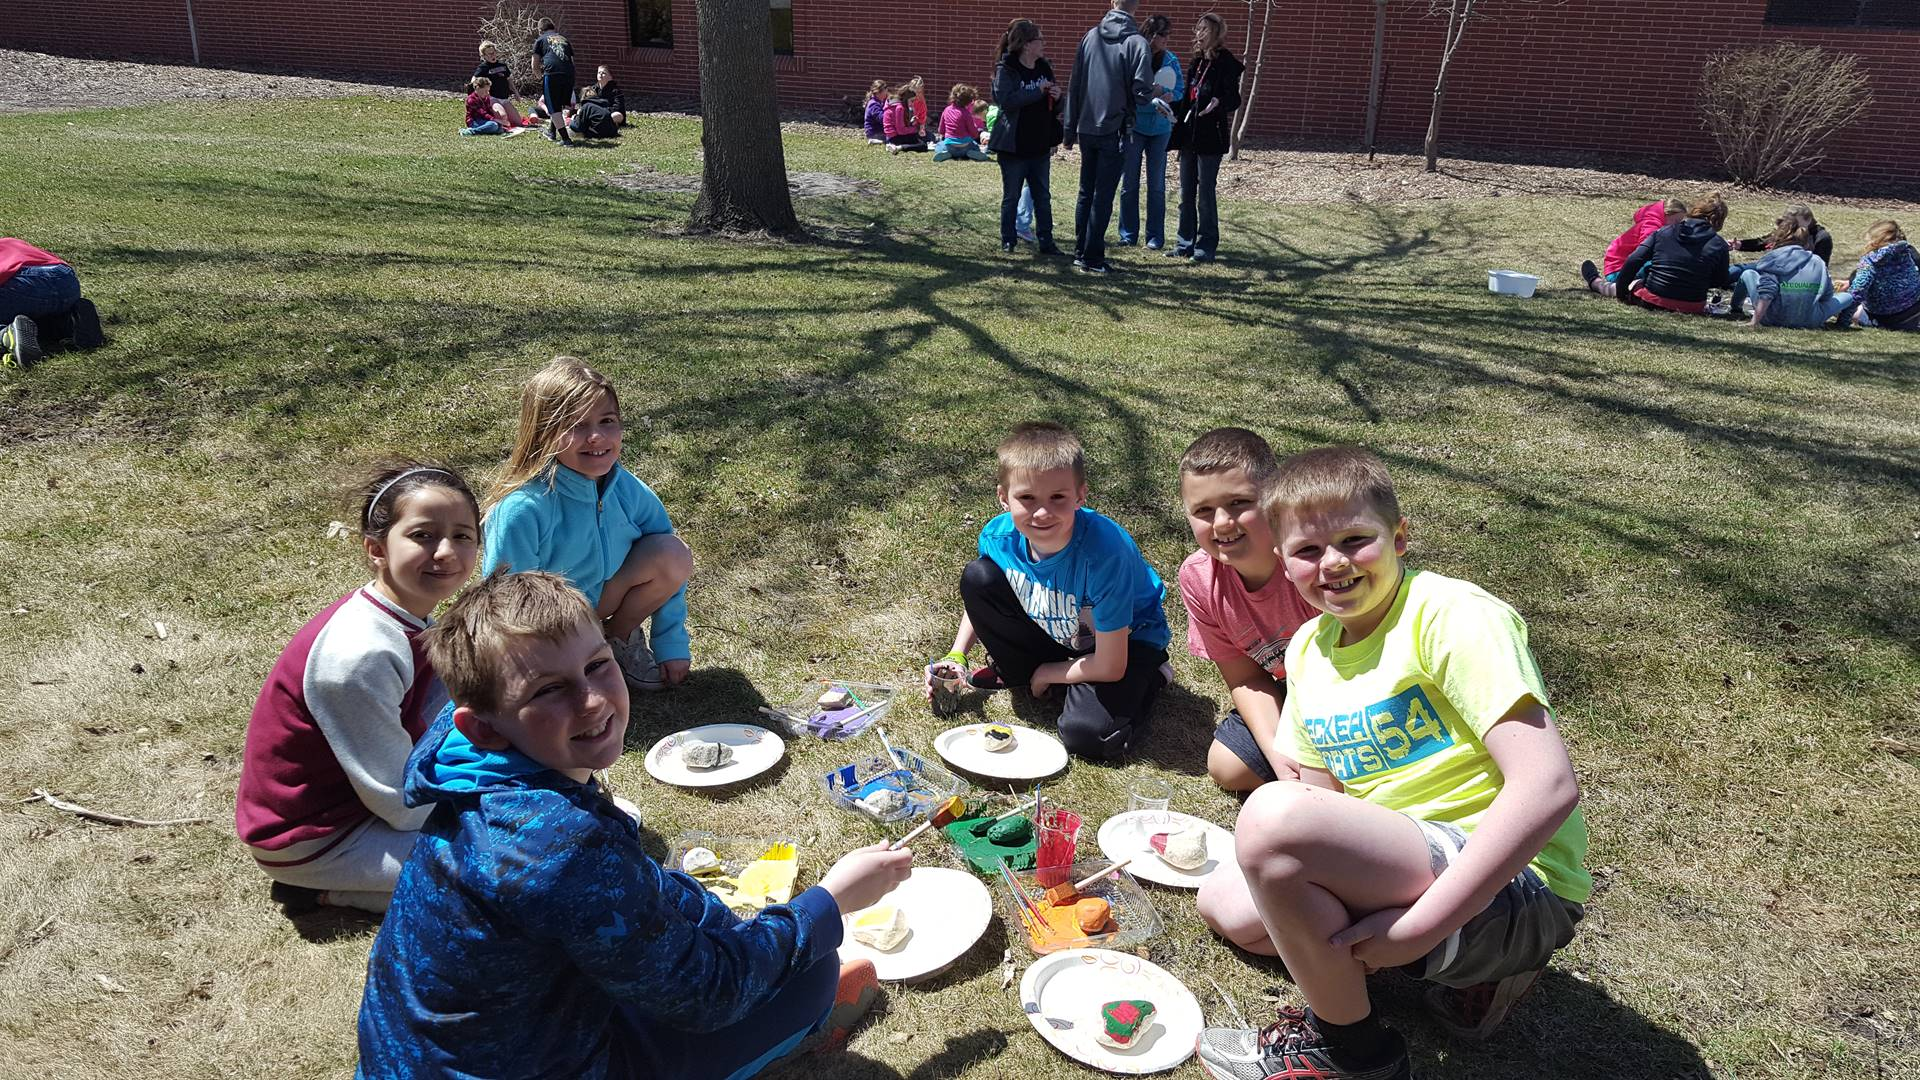 Students in a circle on the grass painting plates